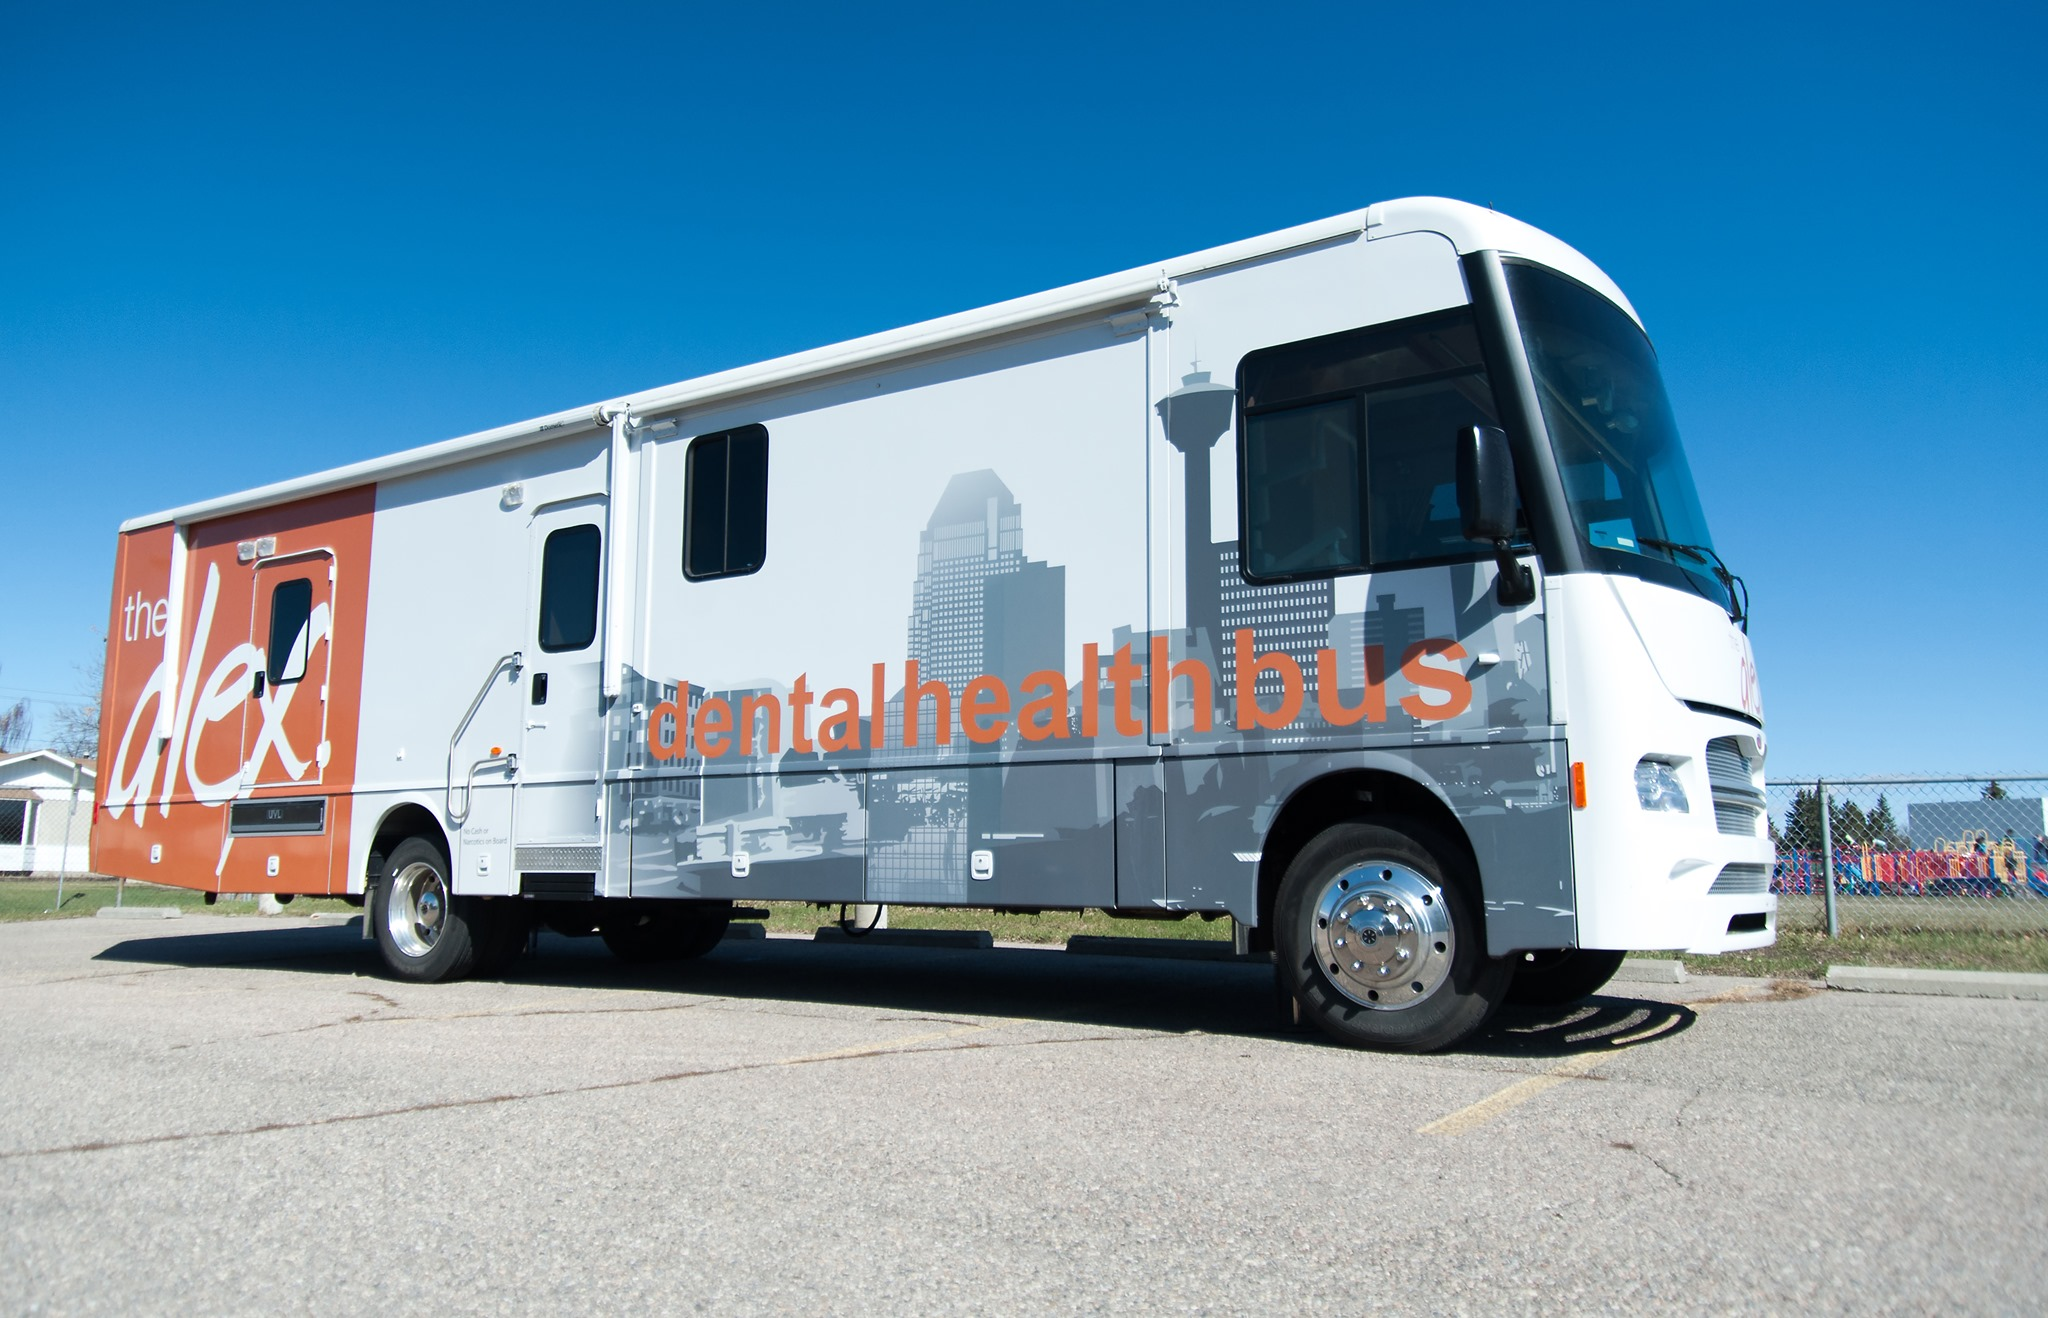 The Alex- Dental health bus